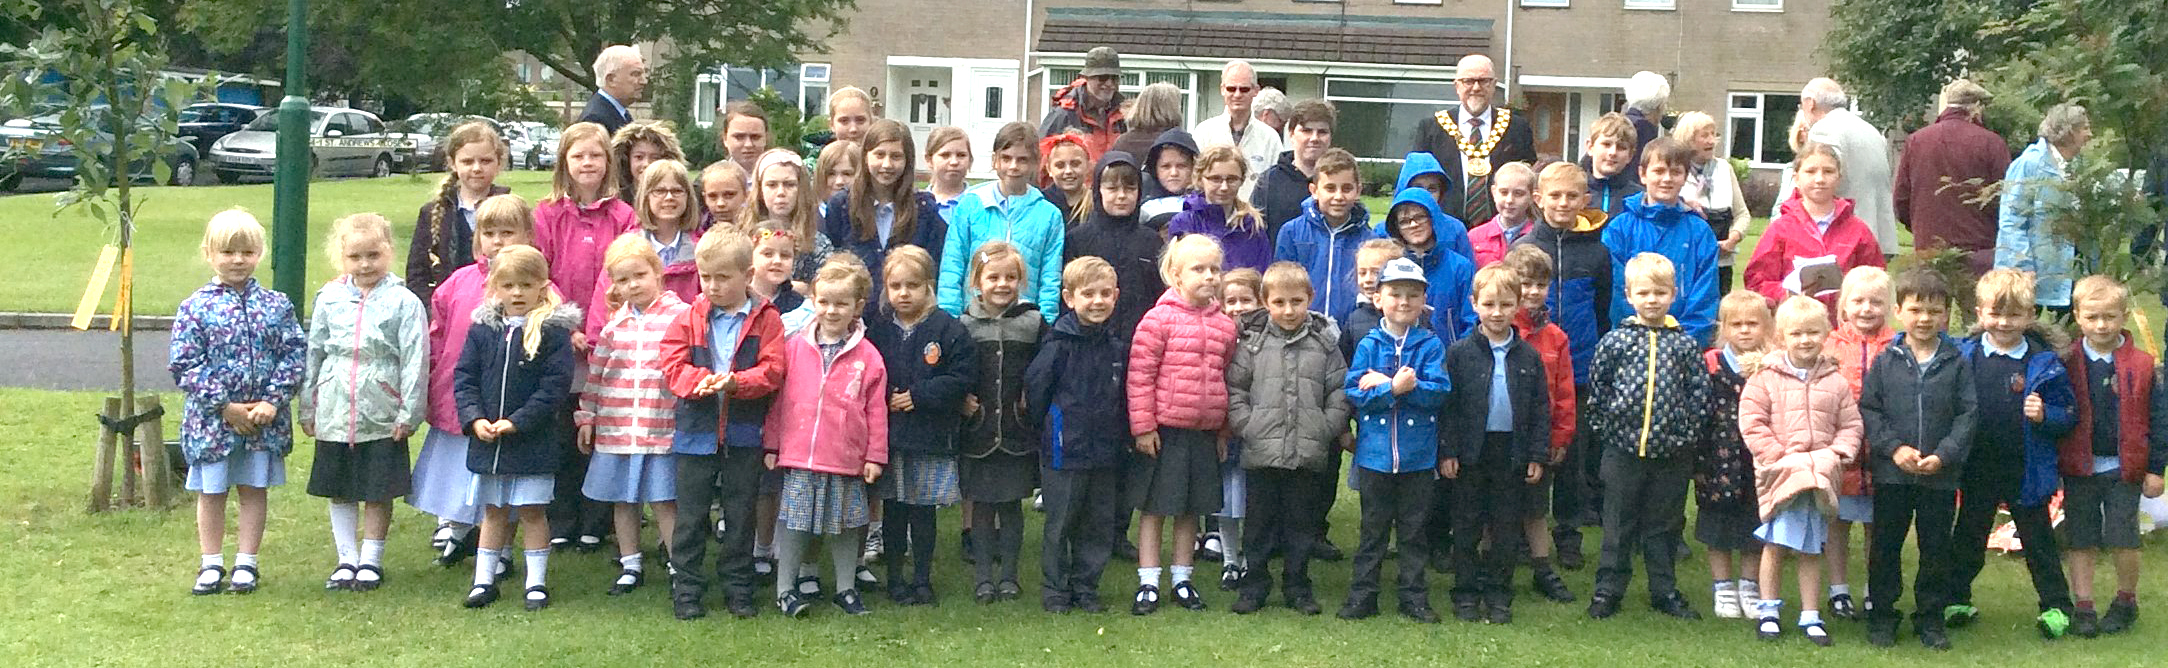 Village School Remembers the Somme